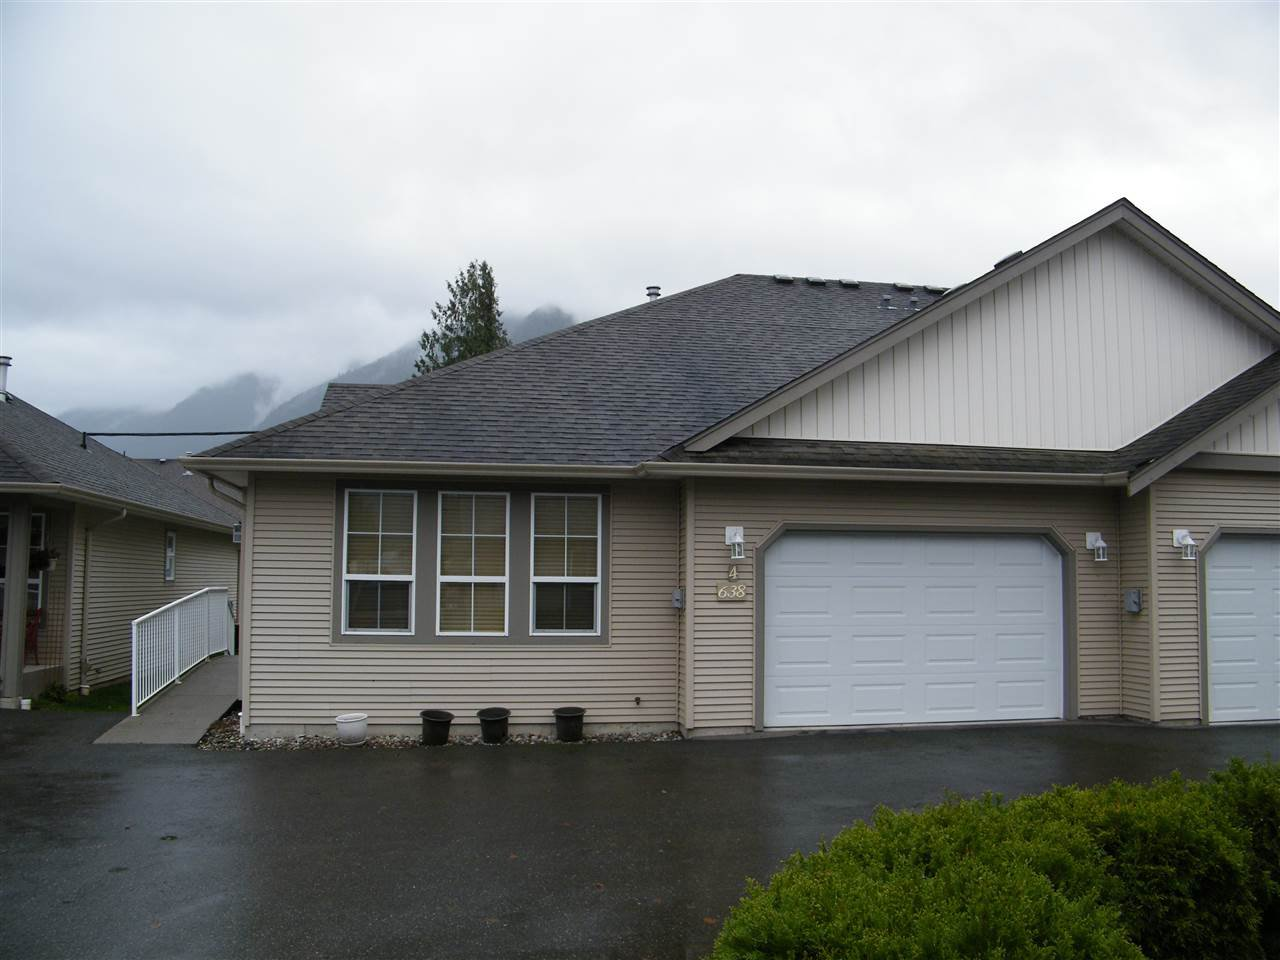 Main Photo: 4 638 COQUIHALLA Street in Hope: Hope Center House 1/2 Duplex for sale : MLS®# R2124027